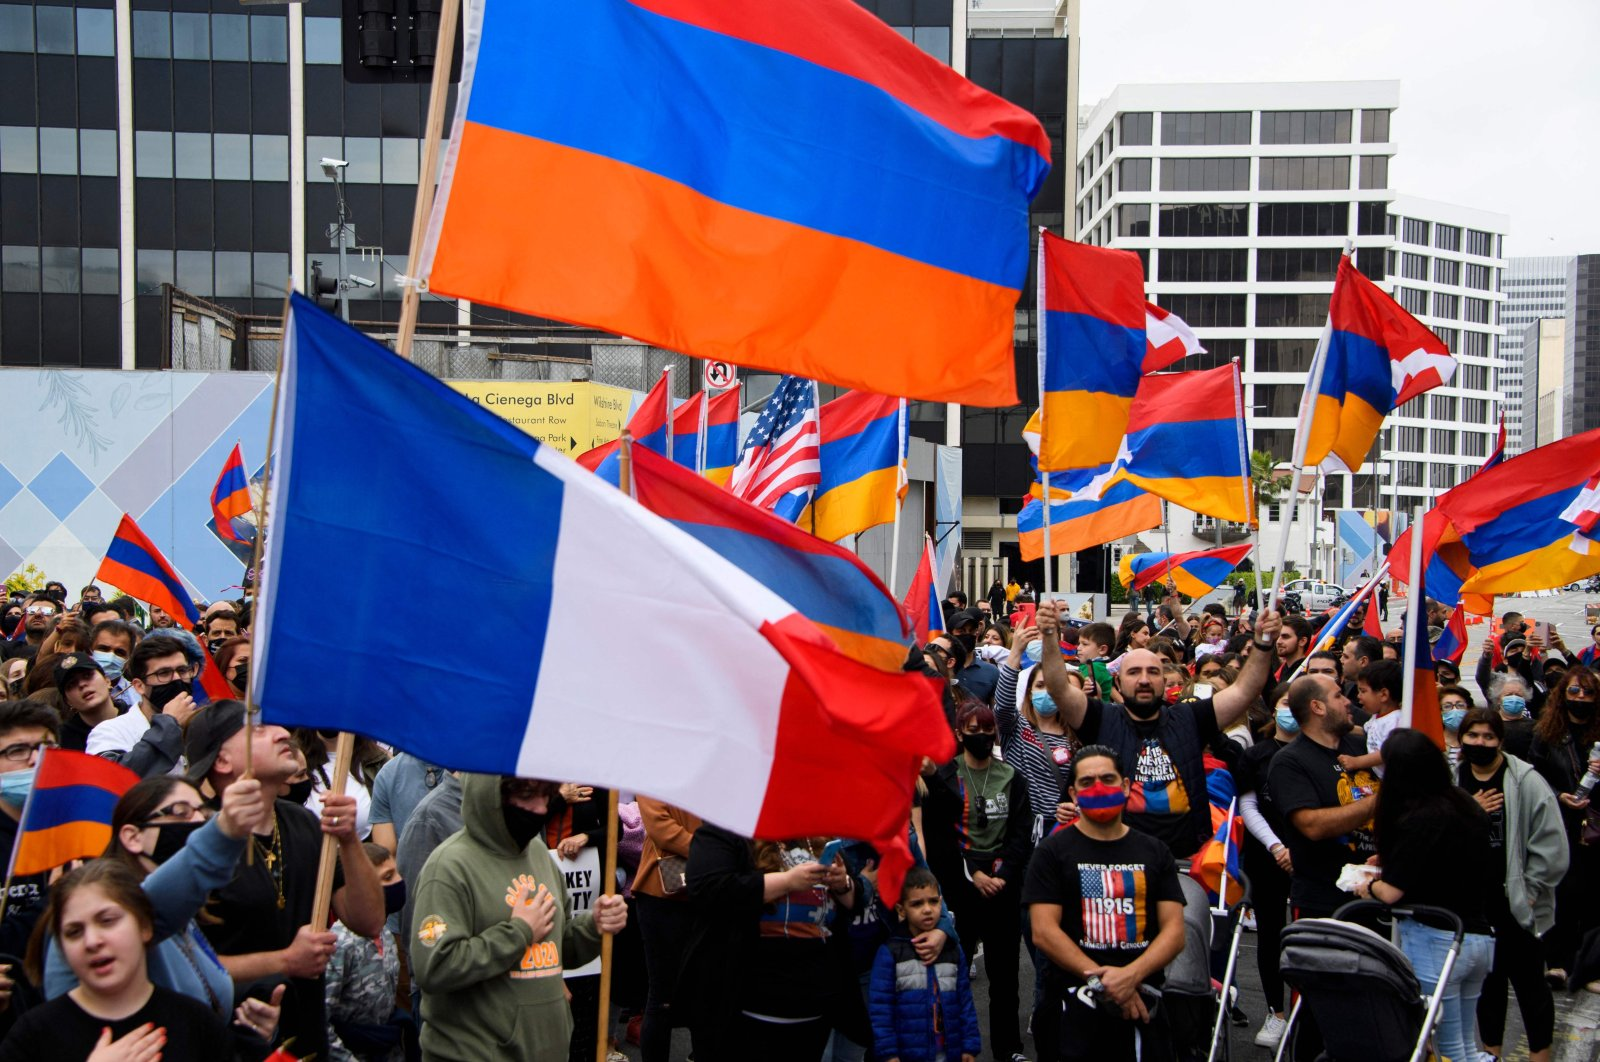 A French flag is waved alongside Armenian flags as people protest outside of the Turkish Consulate on the anniversary of the 1915 events in a demonstration organized by the Armenian Youth Federation (AYF) in Beverly Hills, California, U.S., April 24, 2021. (AFP Photo)